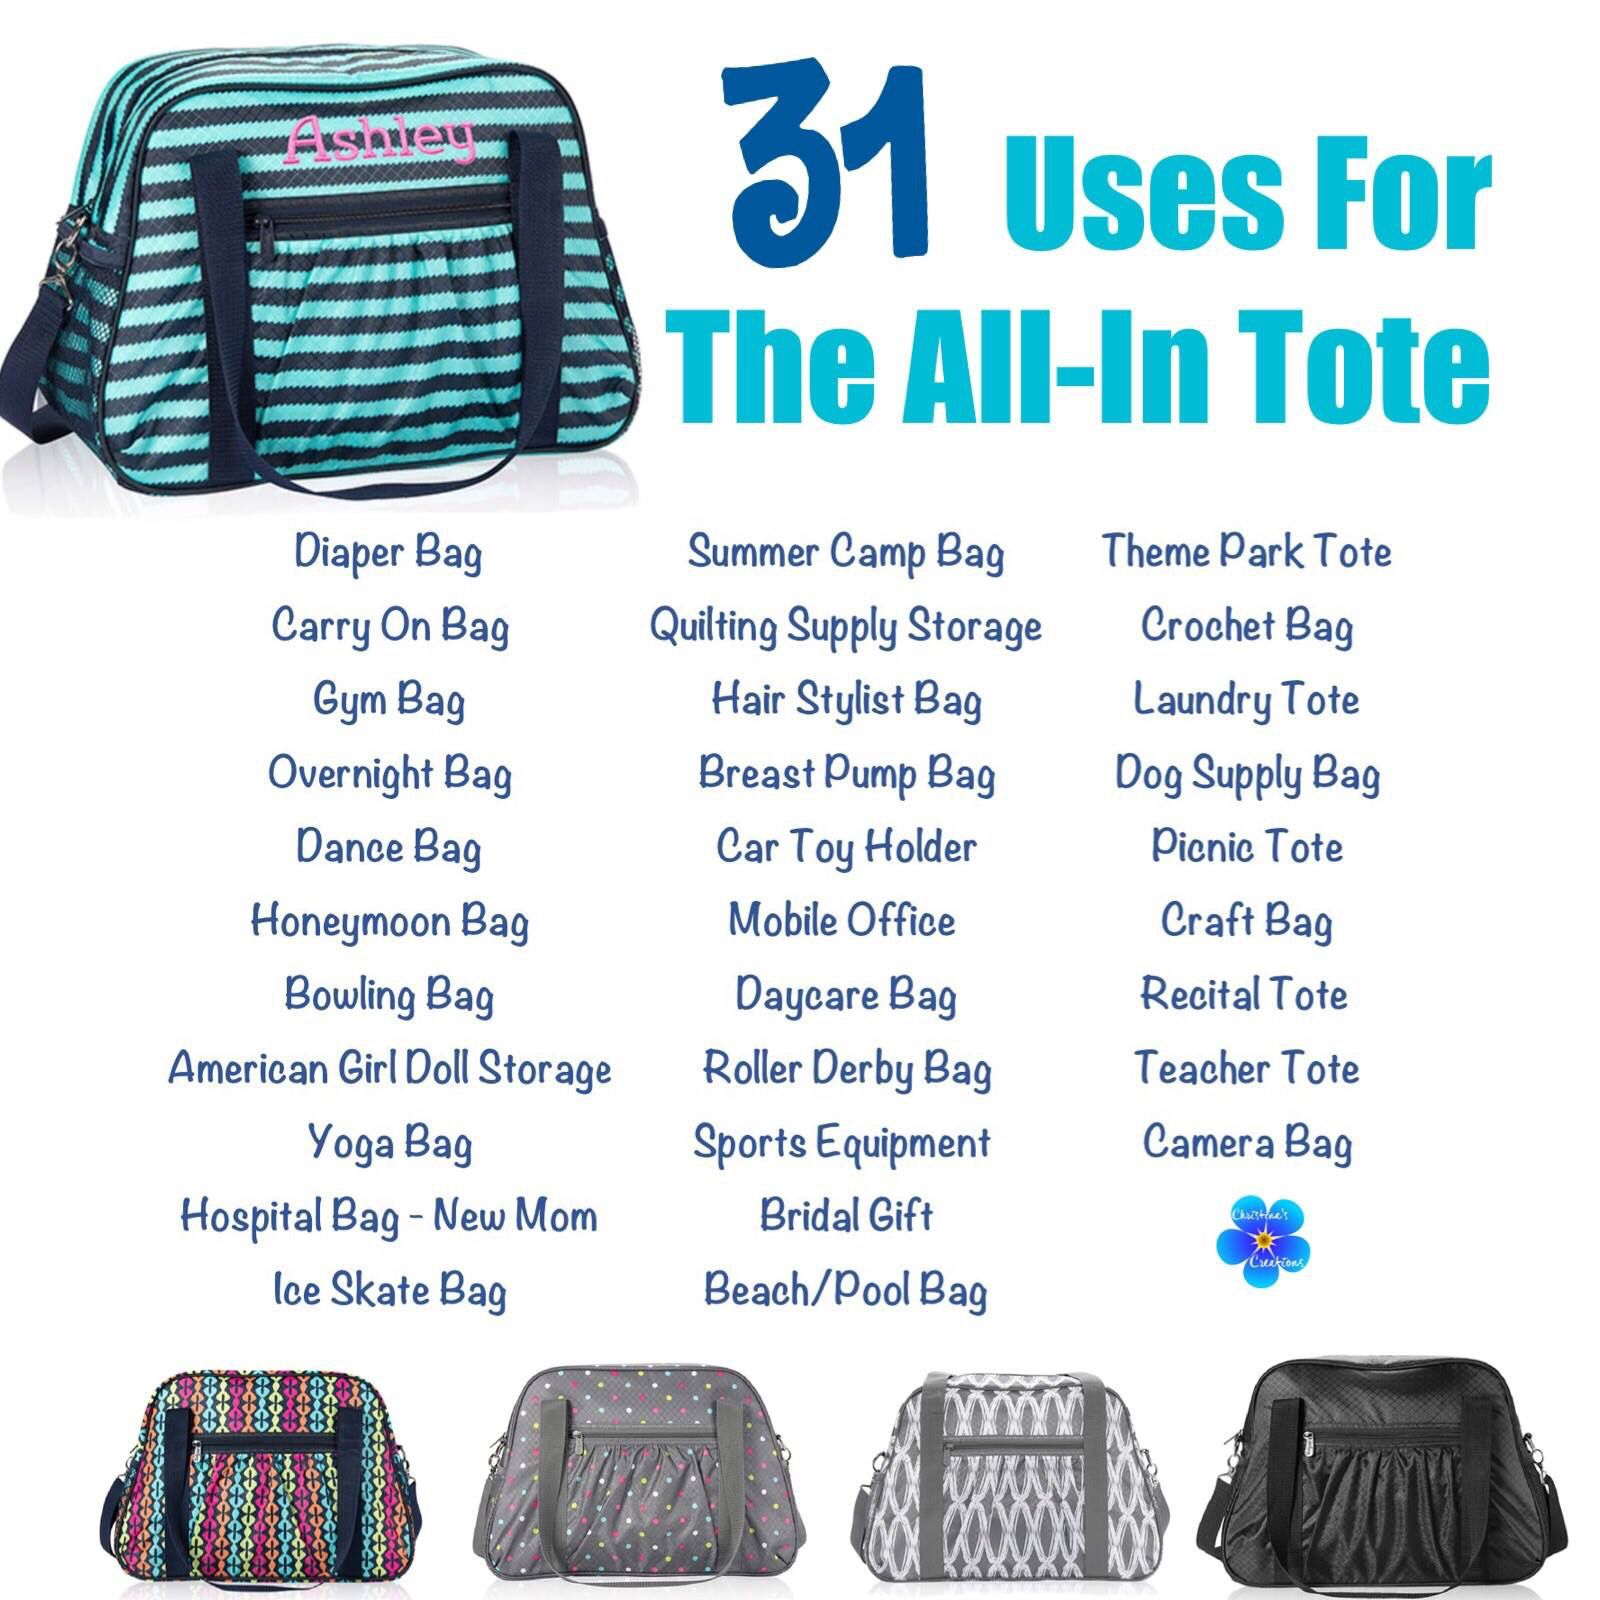 Thirty one november customer special 2014 - 31 Uses For The Thirty One All In Tote Love The Camera Bag Idea